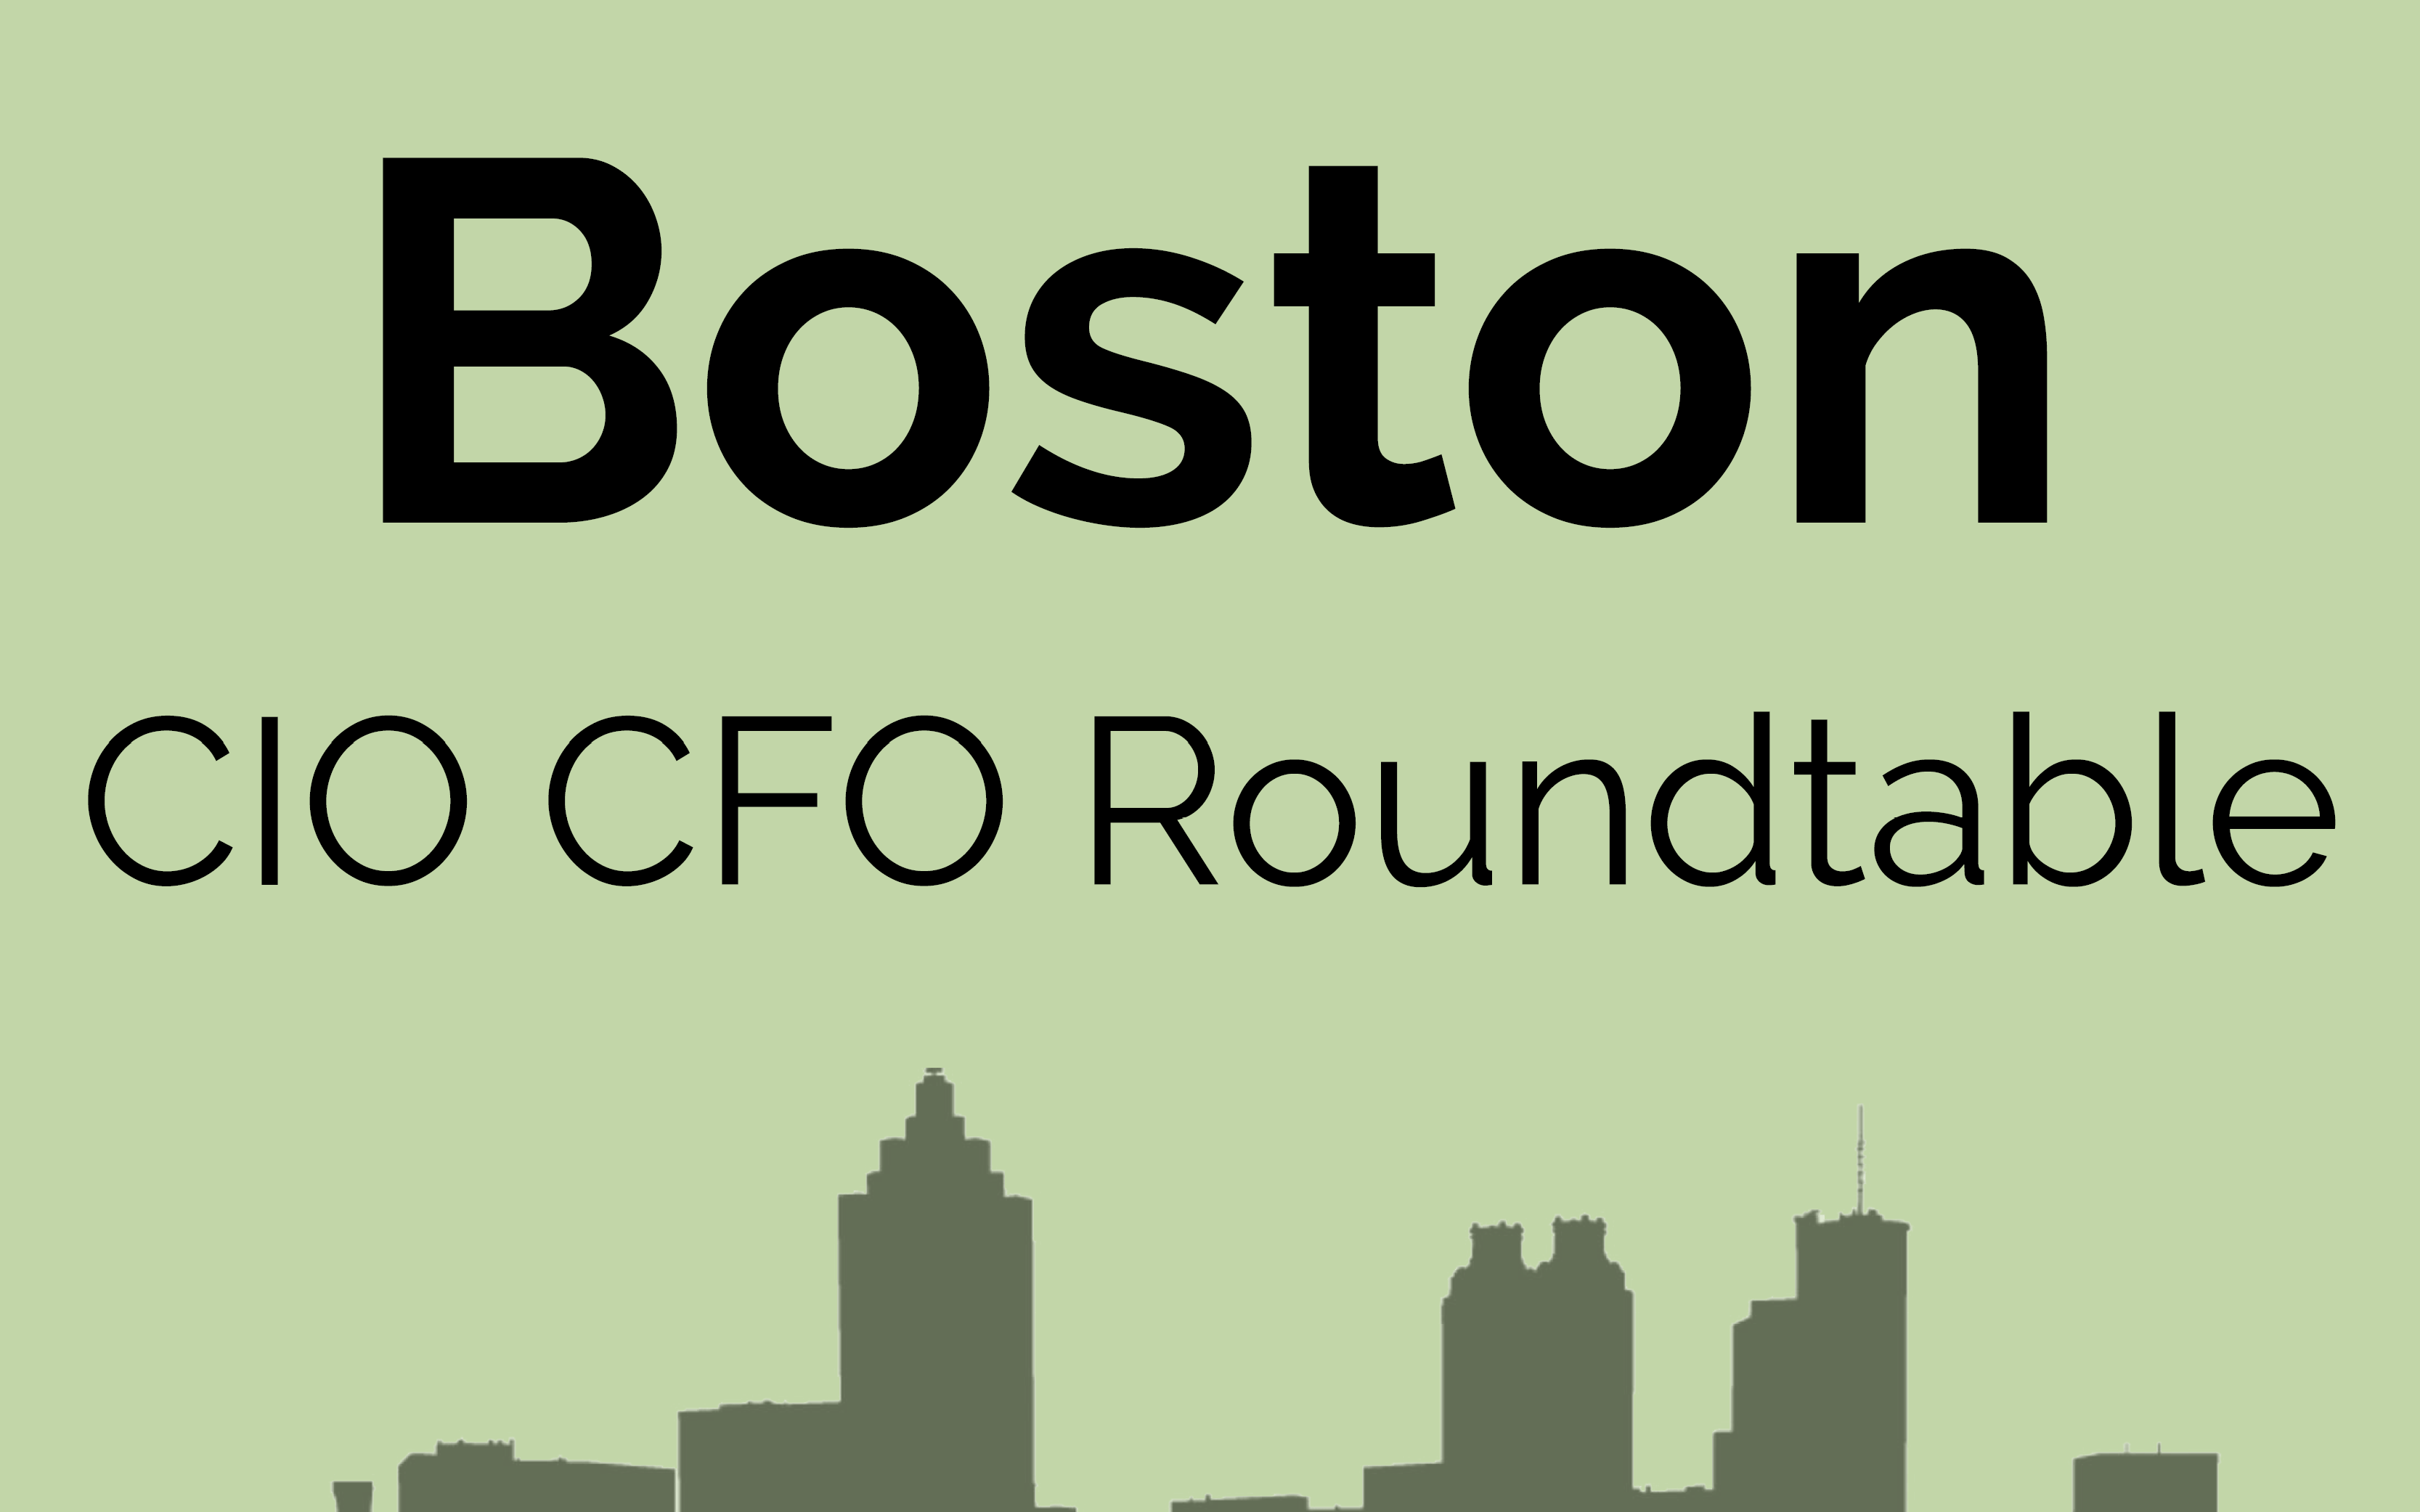 CIO CFO Executive Roundtable: Boston